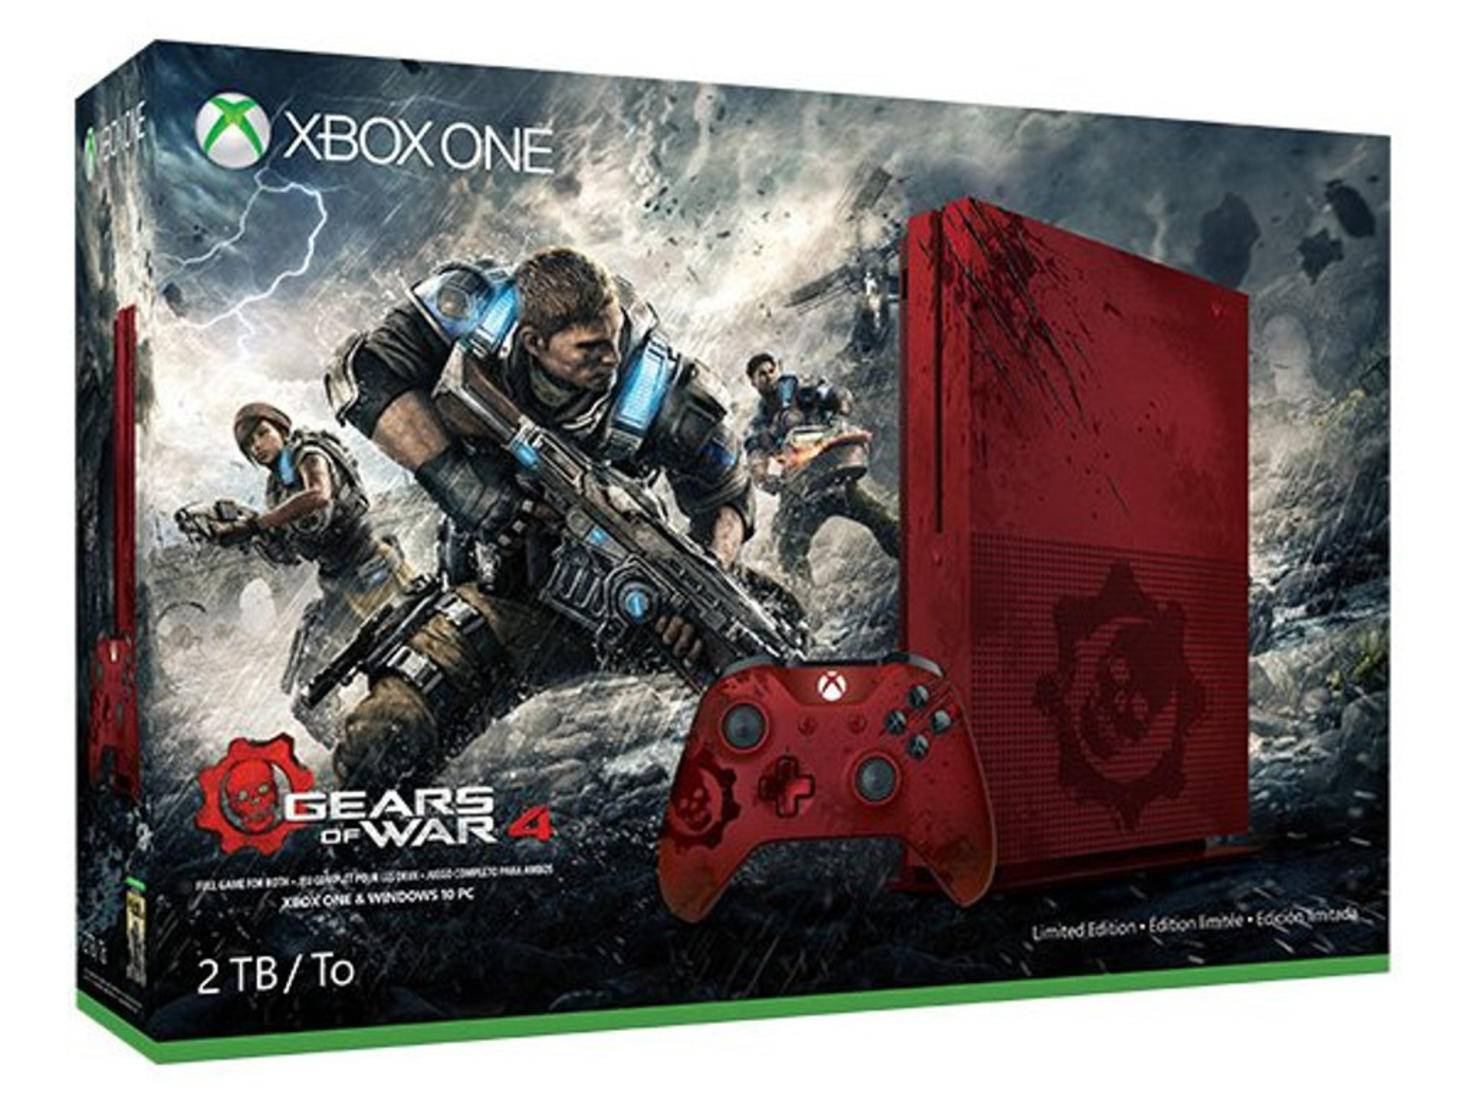 Xbox One S Gears of War 4 Limited Edition